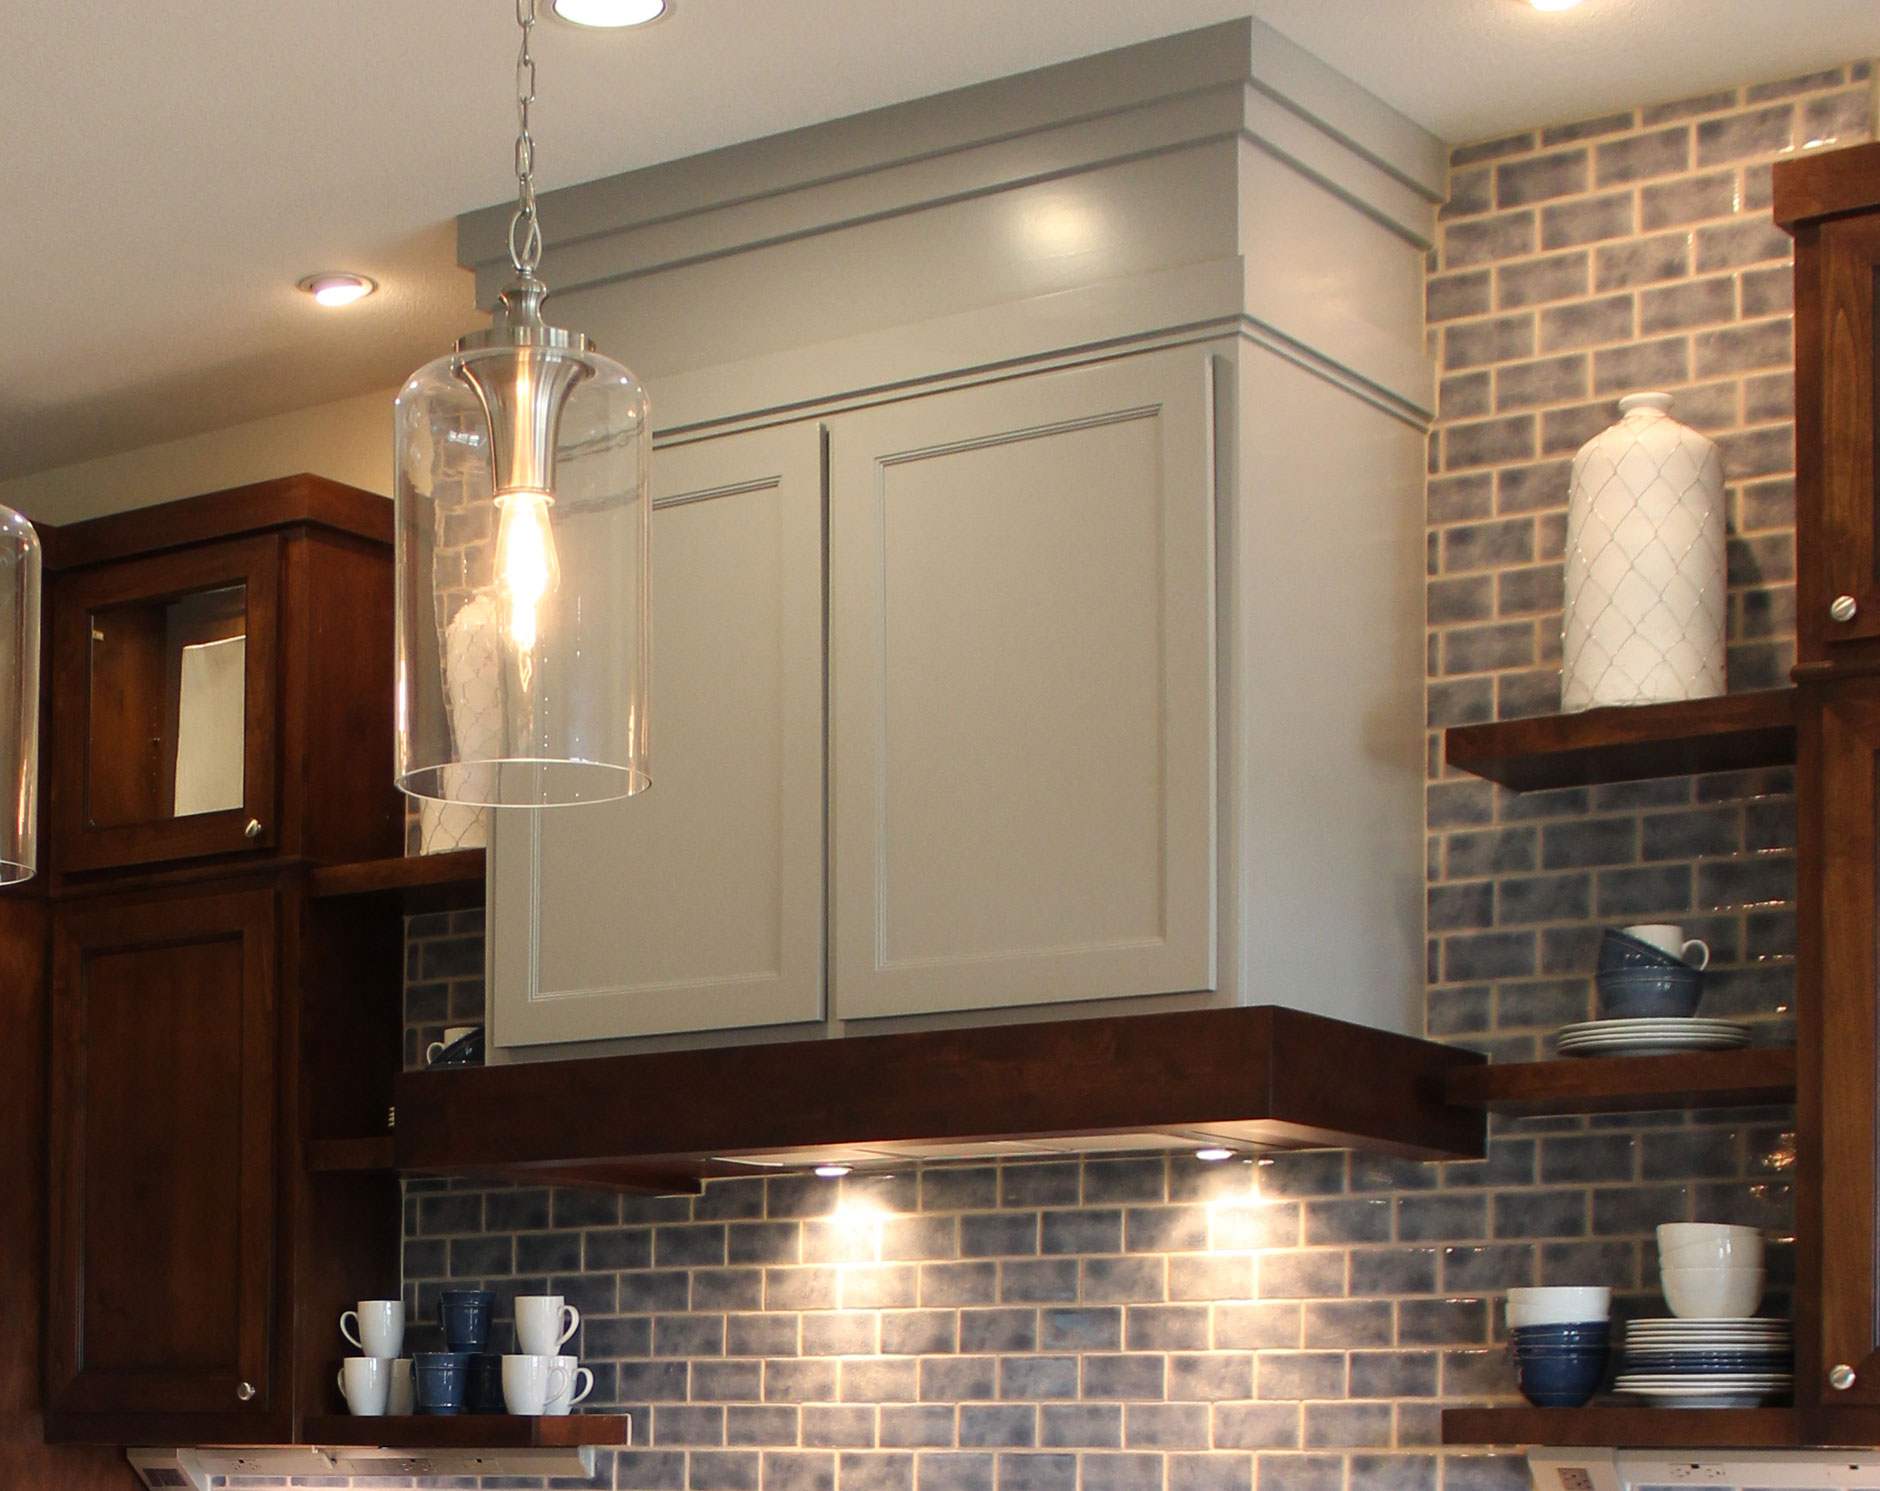 Vent Hood  Craftsman  Burrows Cabinets  central Texas builderdirect custom cabinets